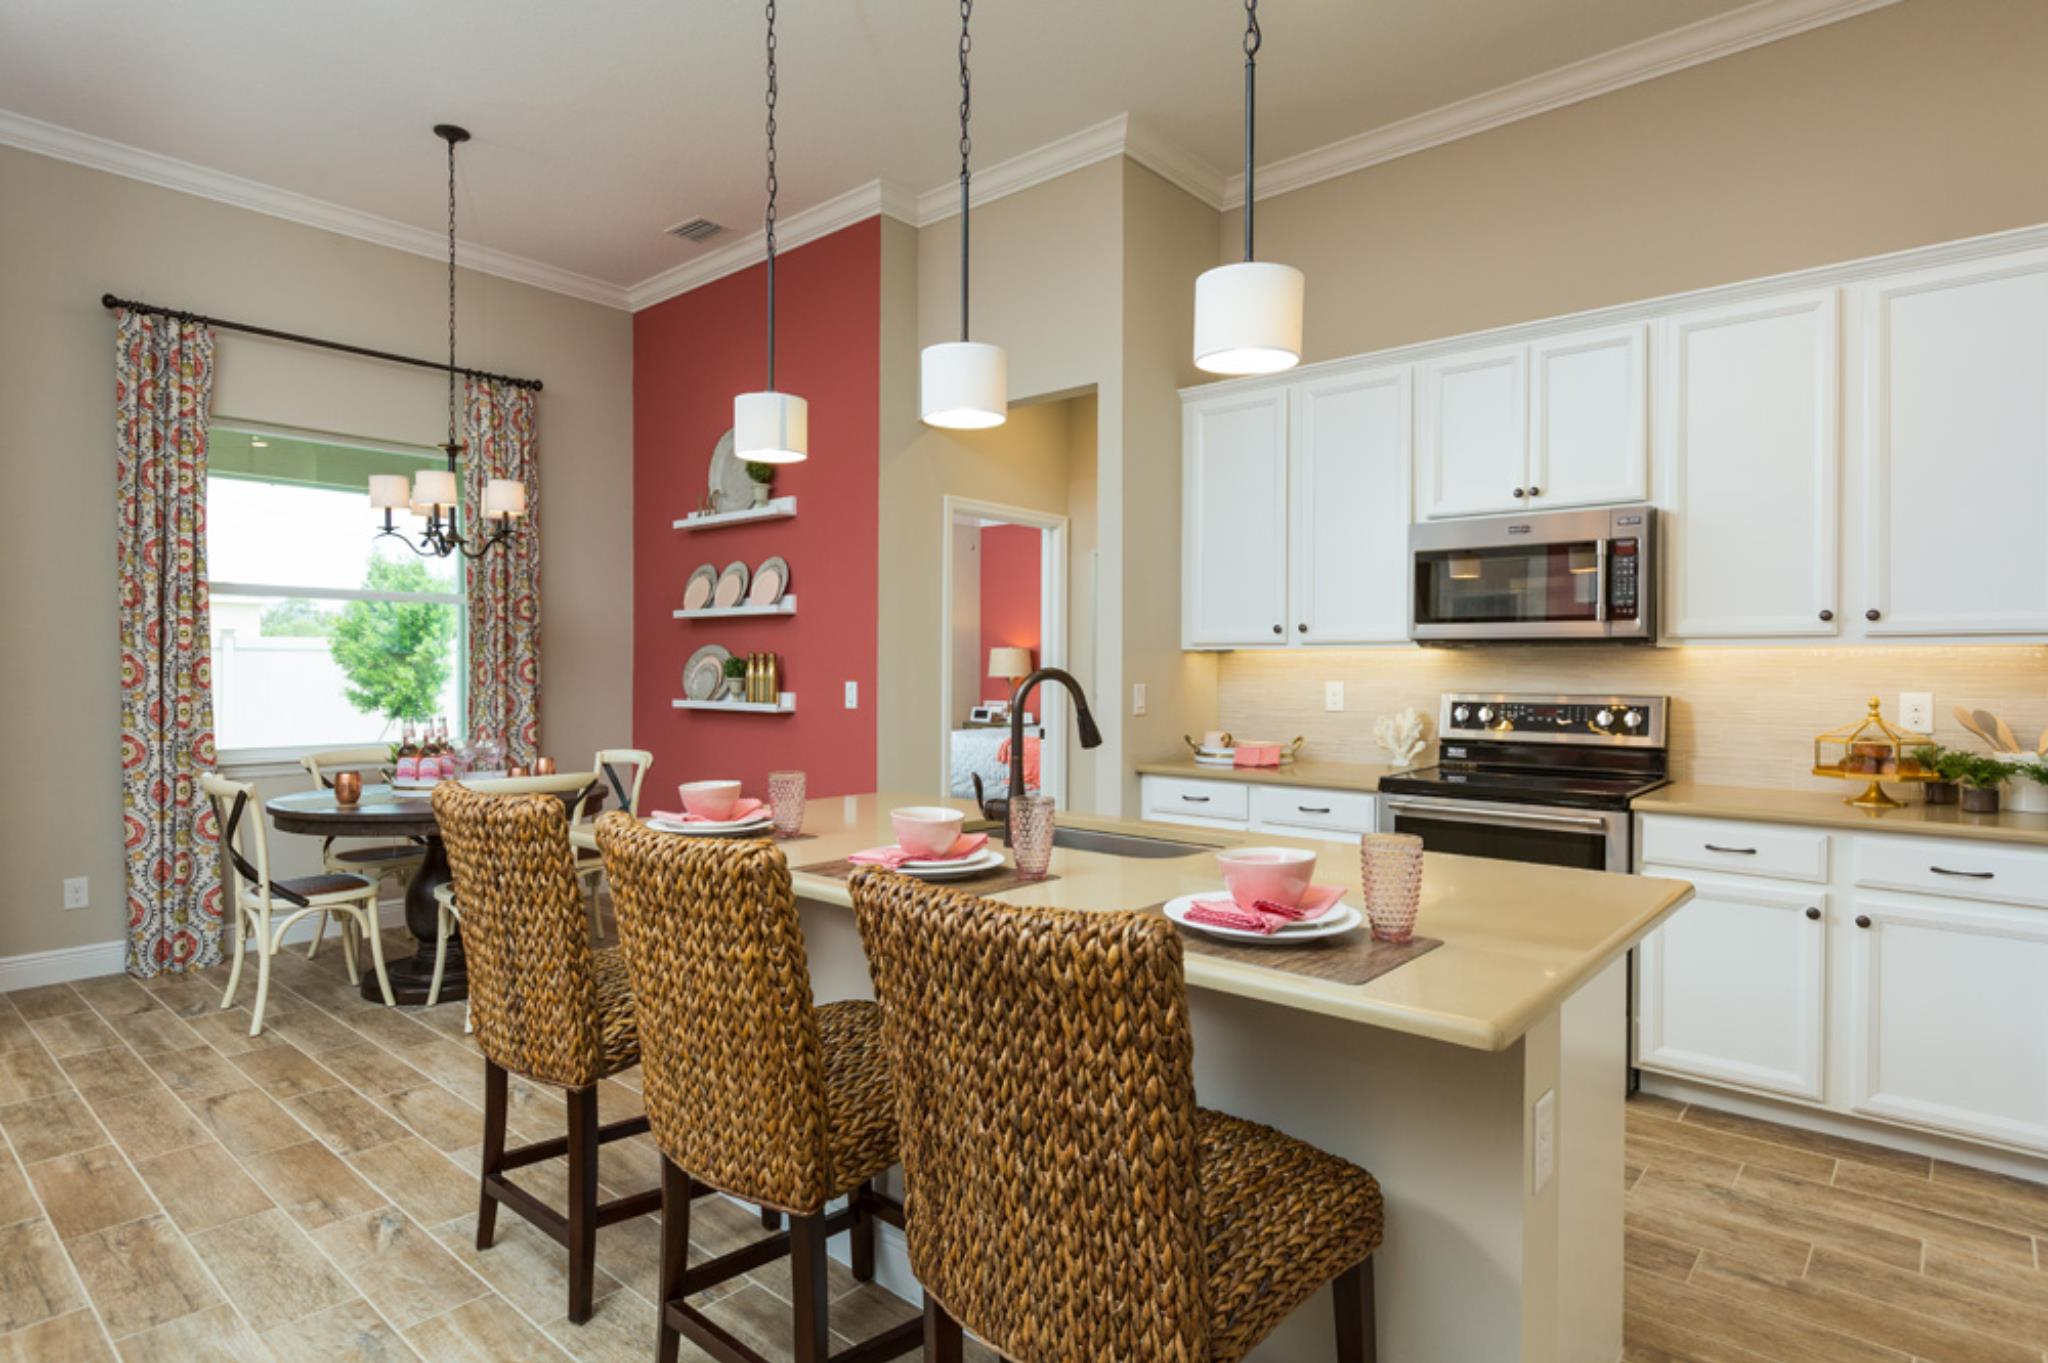 Holiday Builders Floor Plans: The Charleston A Floor Plan In Port St Lucie